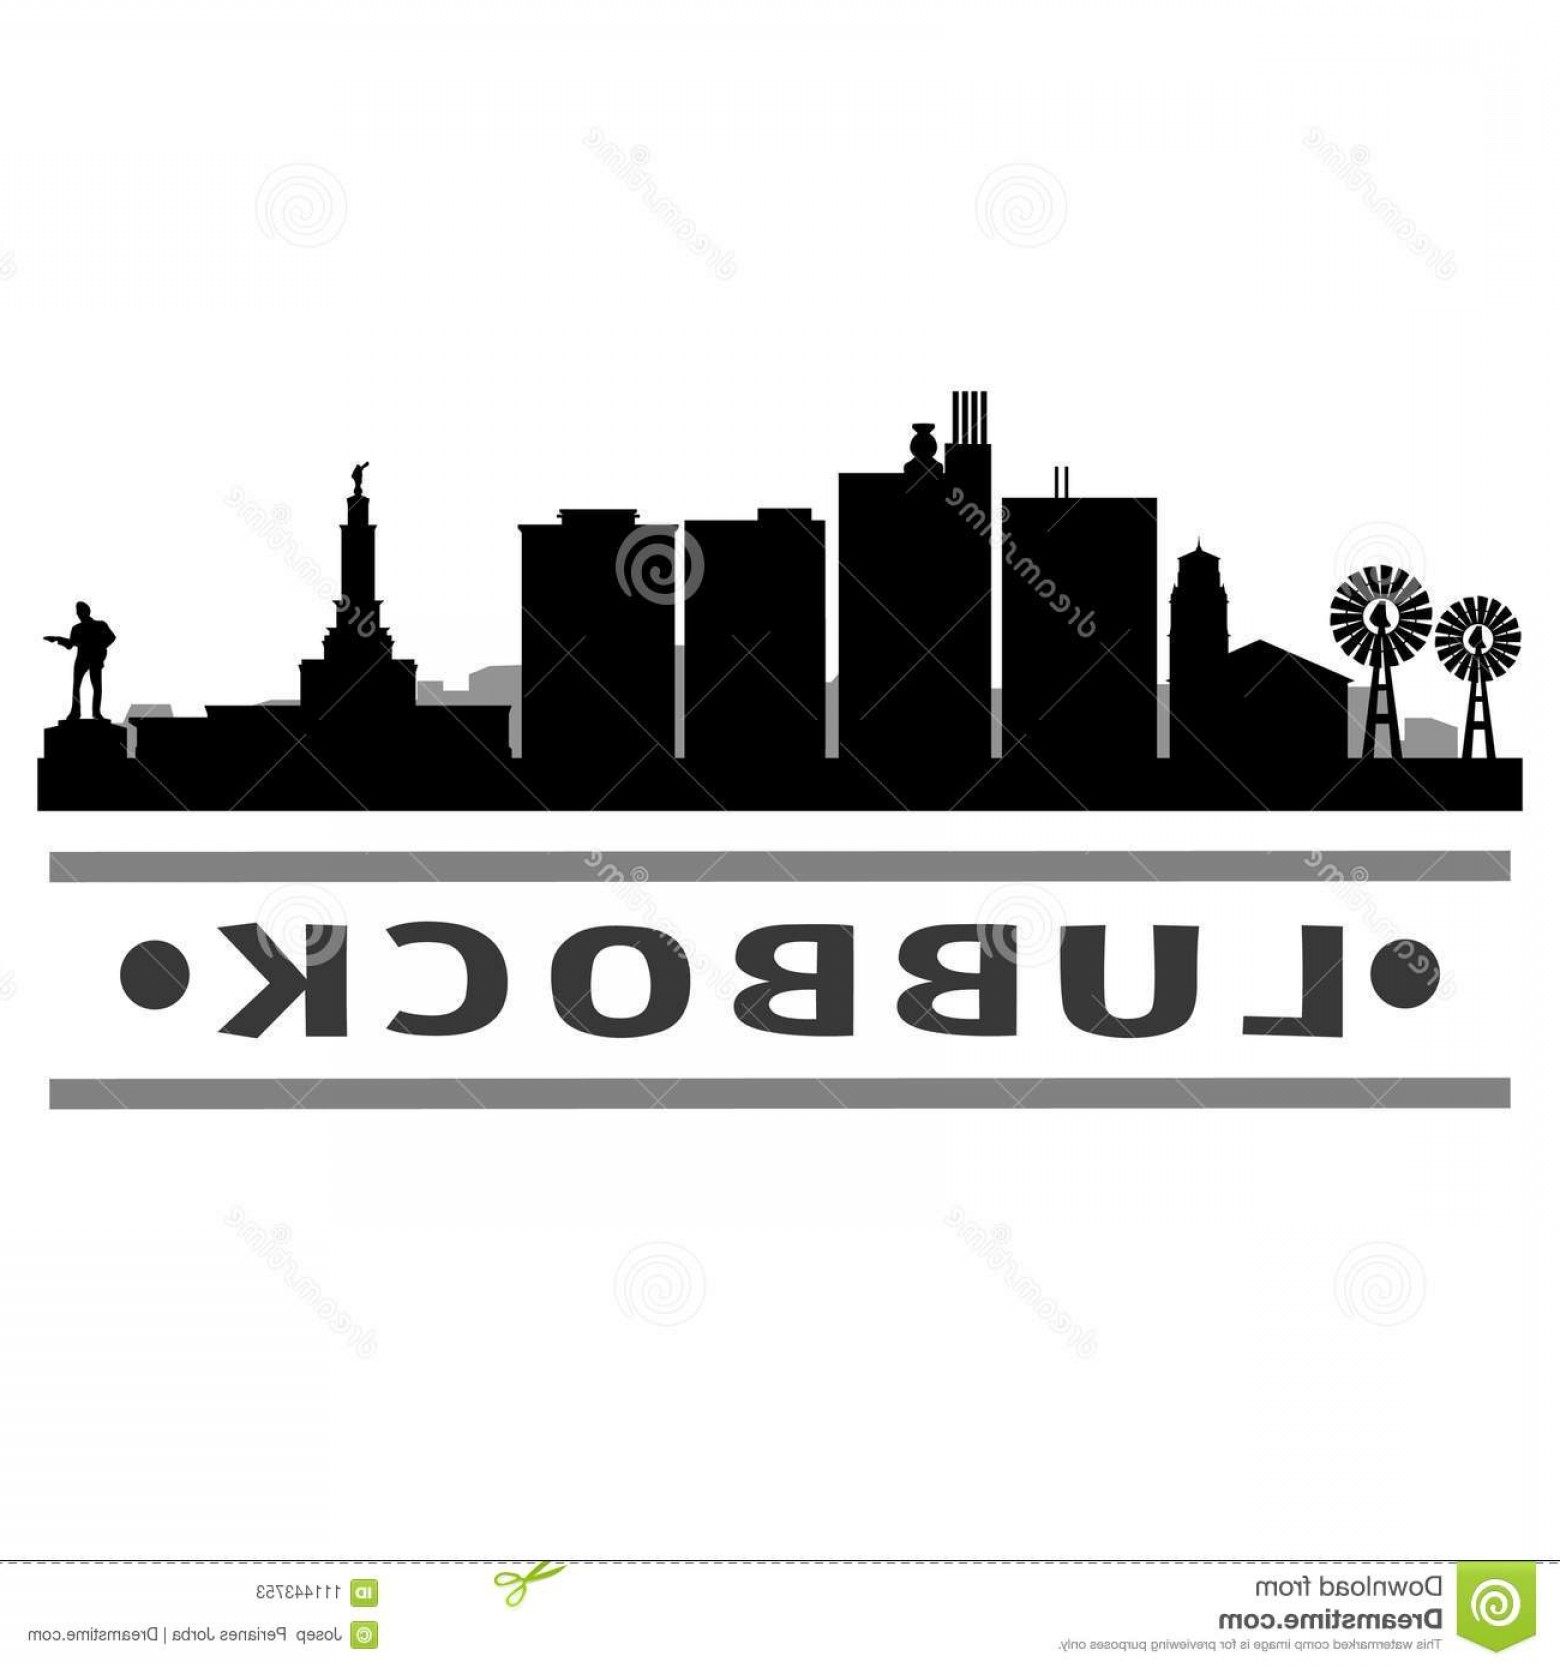 Texas Tech Logo Vector Graphic: Emblematic Elements City Template Vector Icon Building Urban Art Lubbock Texas Design Skyline Flat Silhouette Editable Image